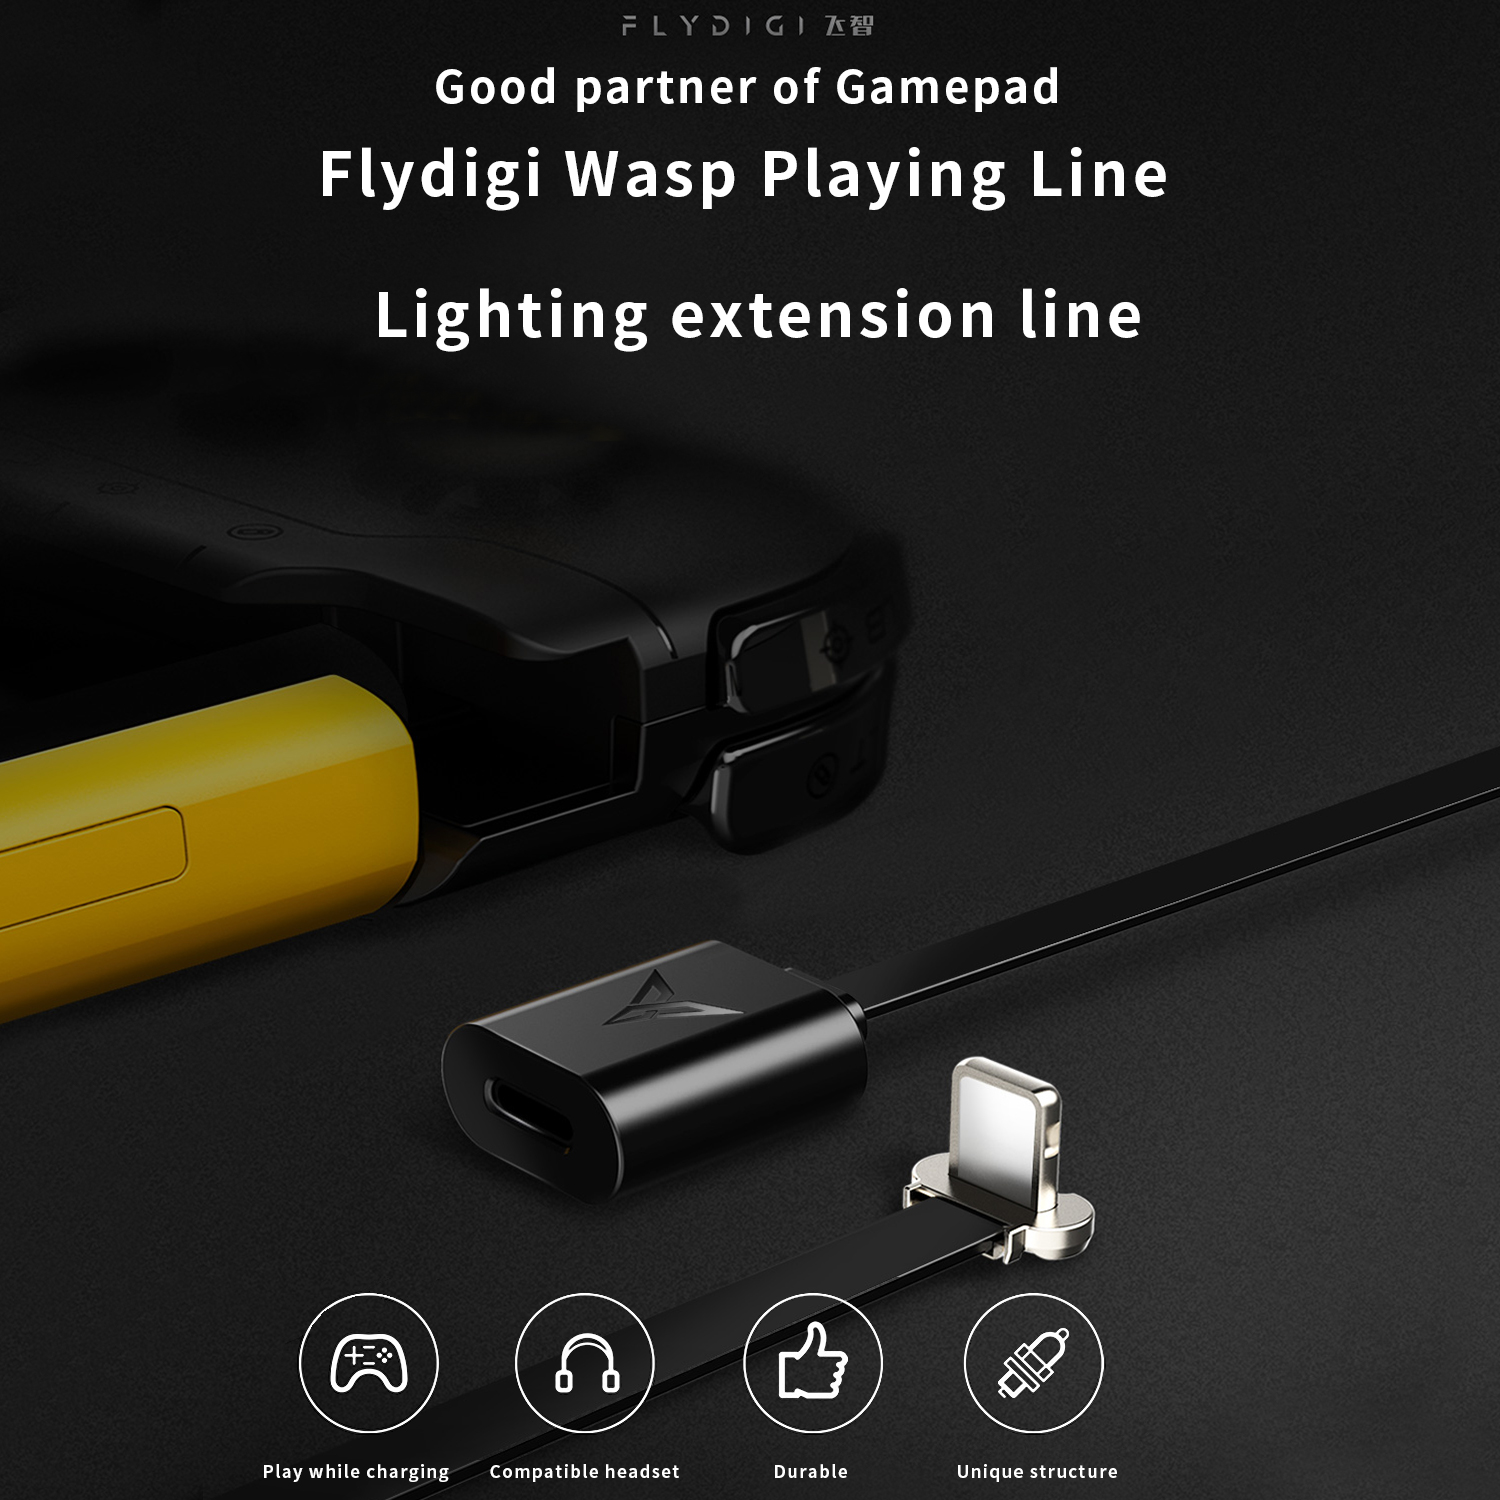 Flydidi Wasp Handle Wasp Playing Line Charging While Playing Games Gamepad Set Wee Handle Blue Bee Single Hand Handle Universal for iOS iPhone